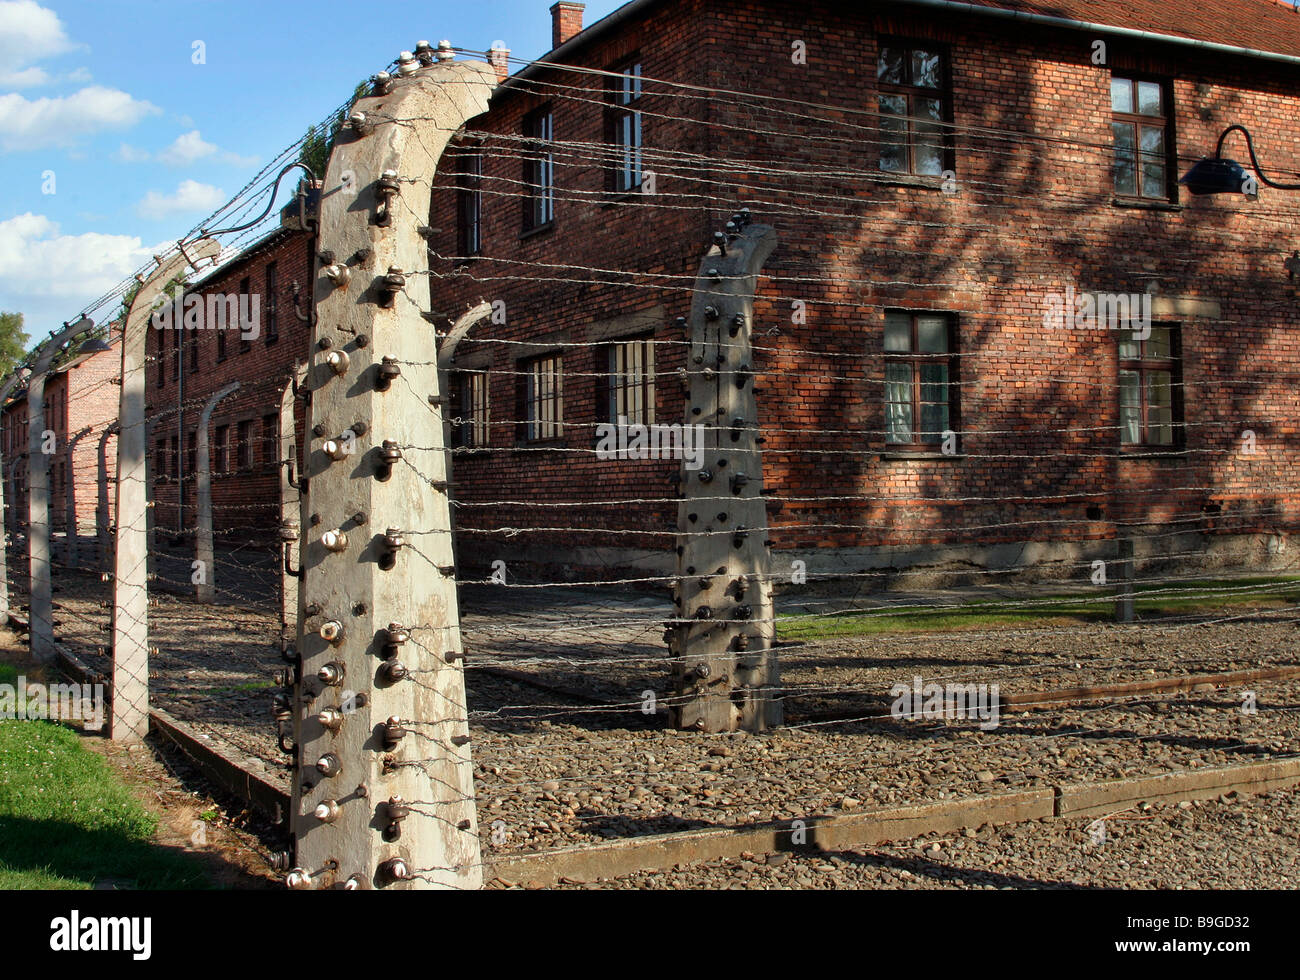 Nazi concentration camp Auschwitz-Birkenau  electrified triple barbed wire fence corridor between prison block fences - Stock Image